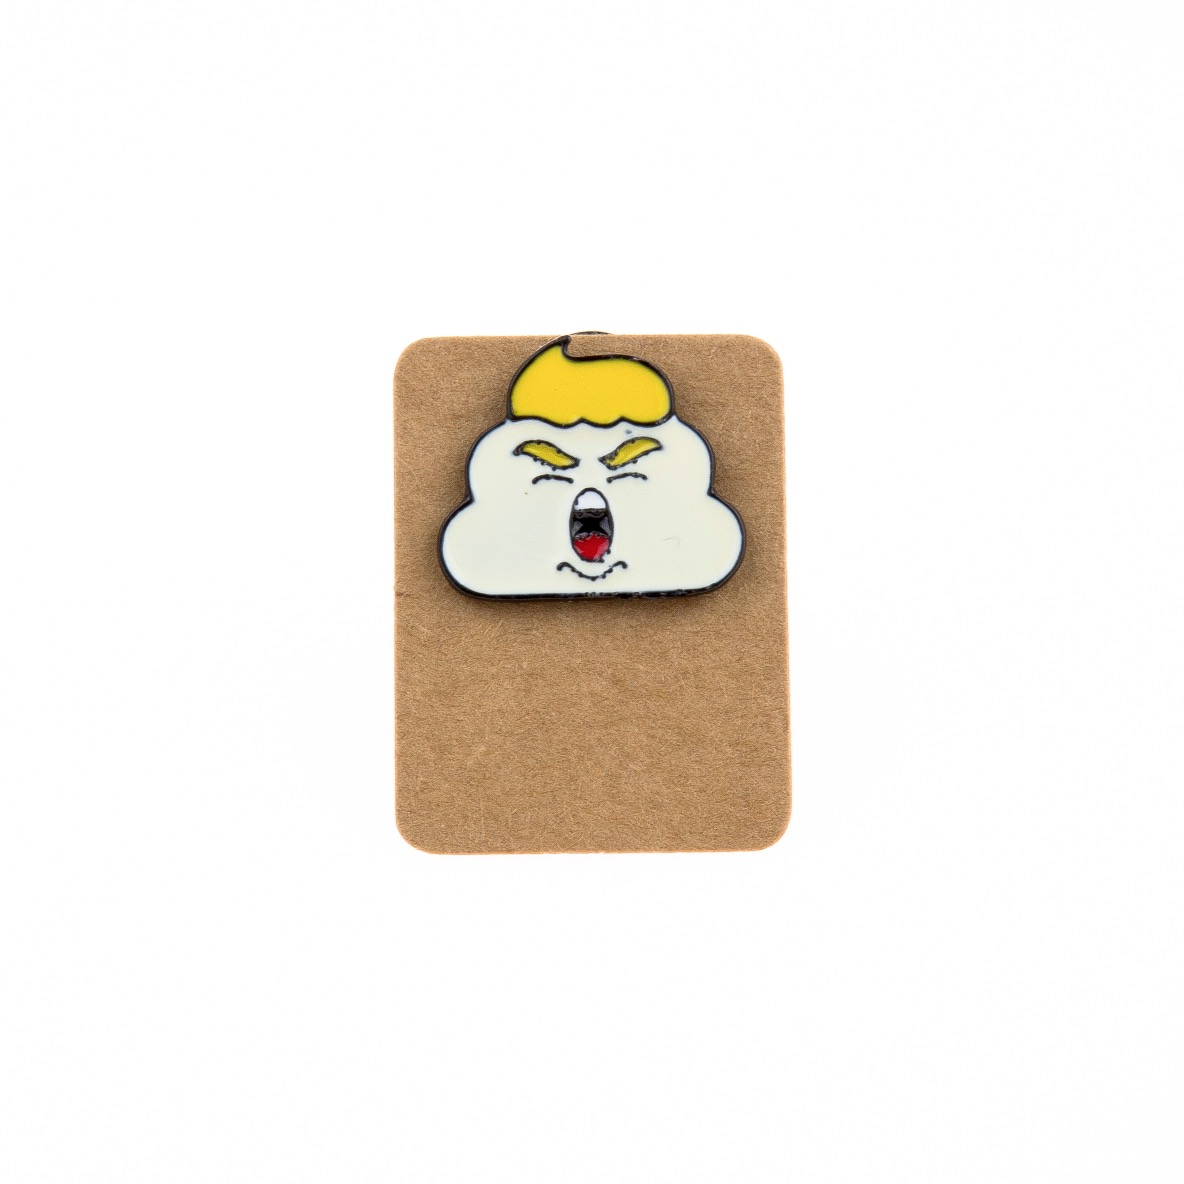 Metal Angry Trump Cloud Enamel Pin Badge